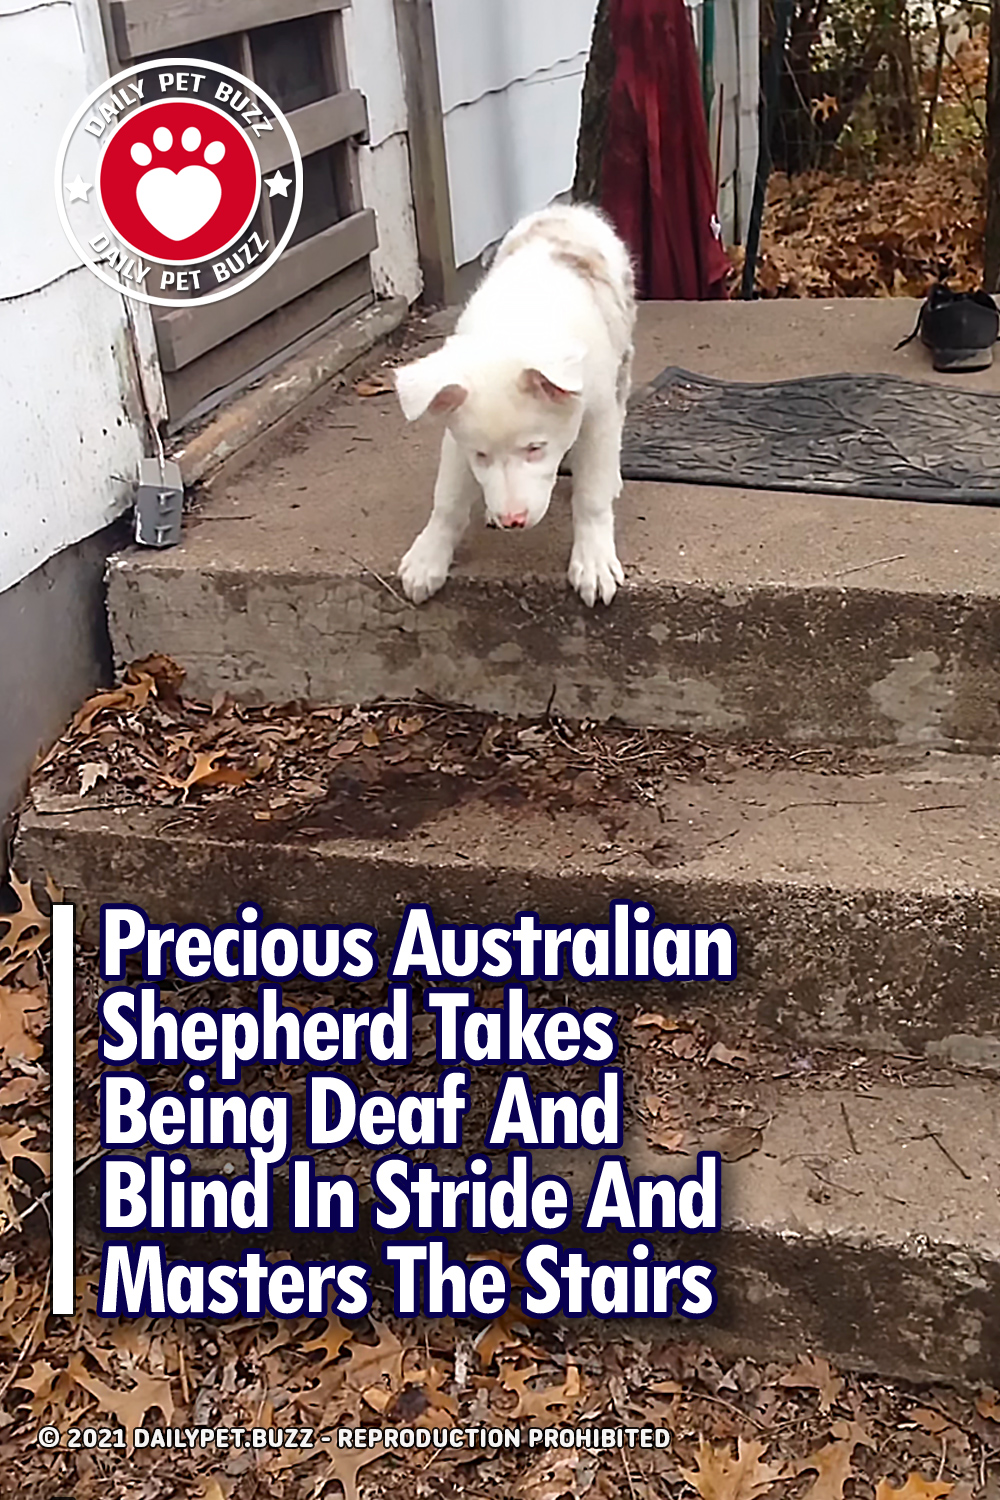 Precious Australian Shepherd Takes Being Deaf And Blind In Stride And Masters The Stairs